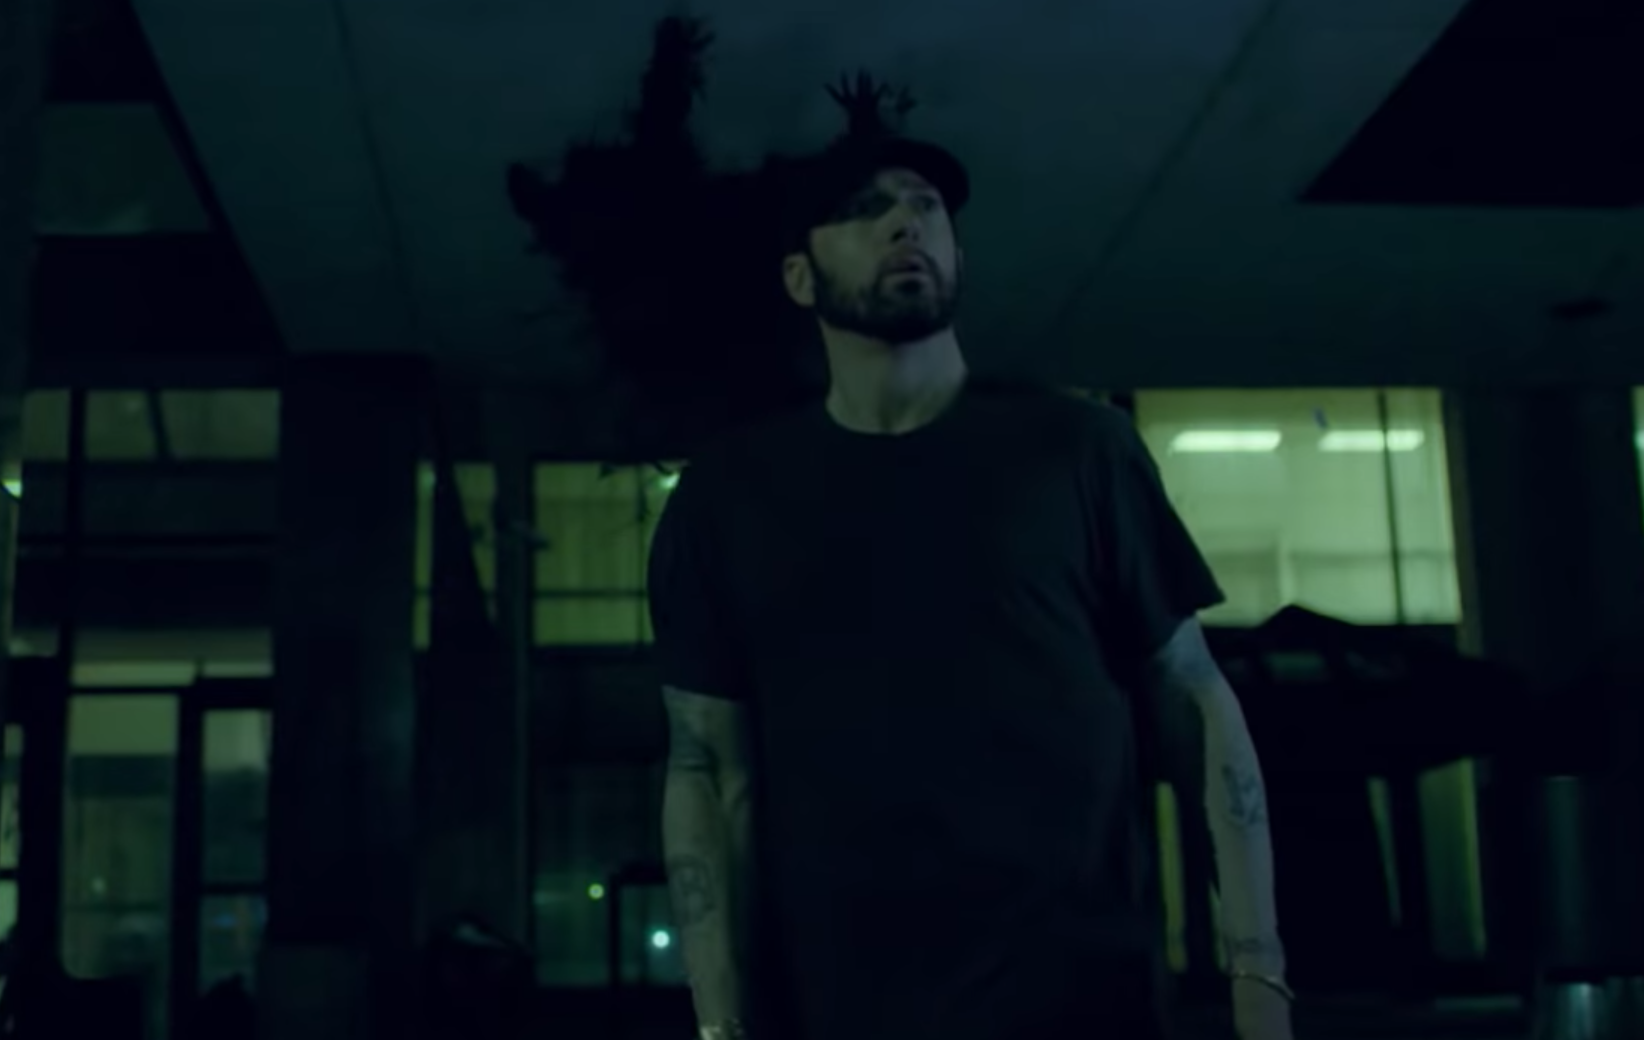 Eminem runs from the specter of his critics in video for